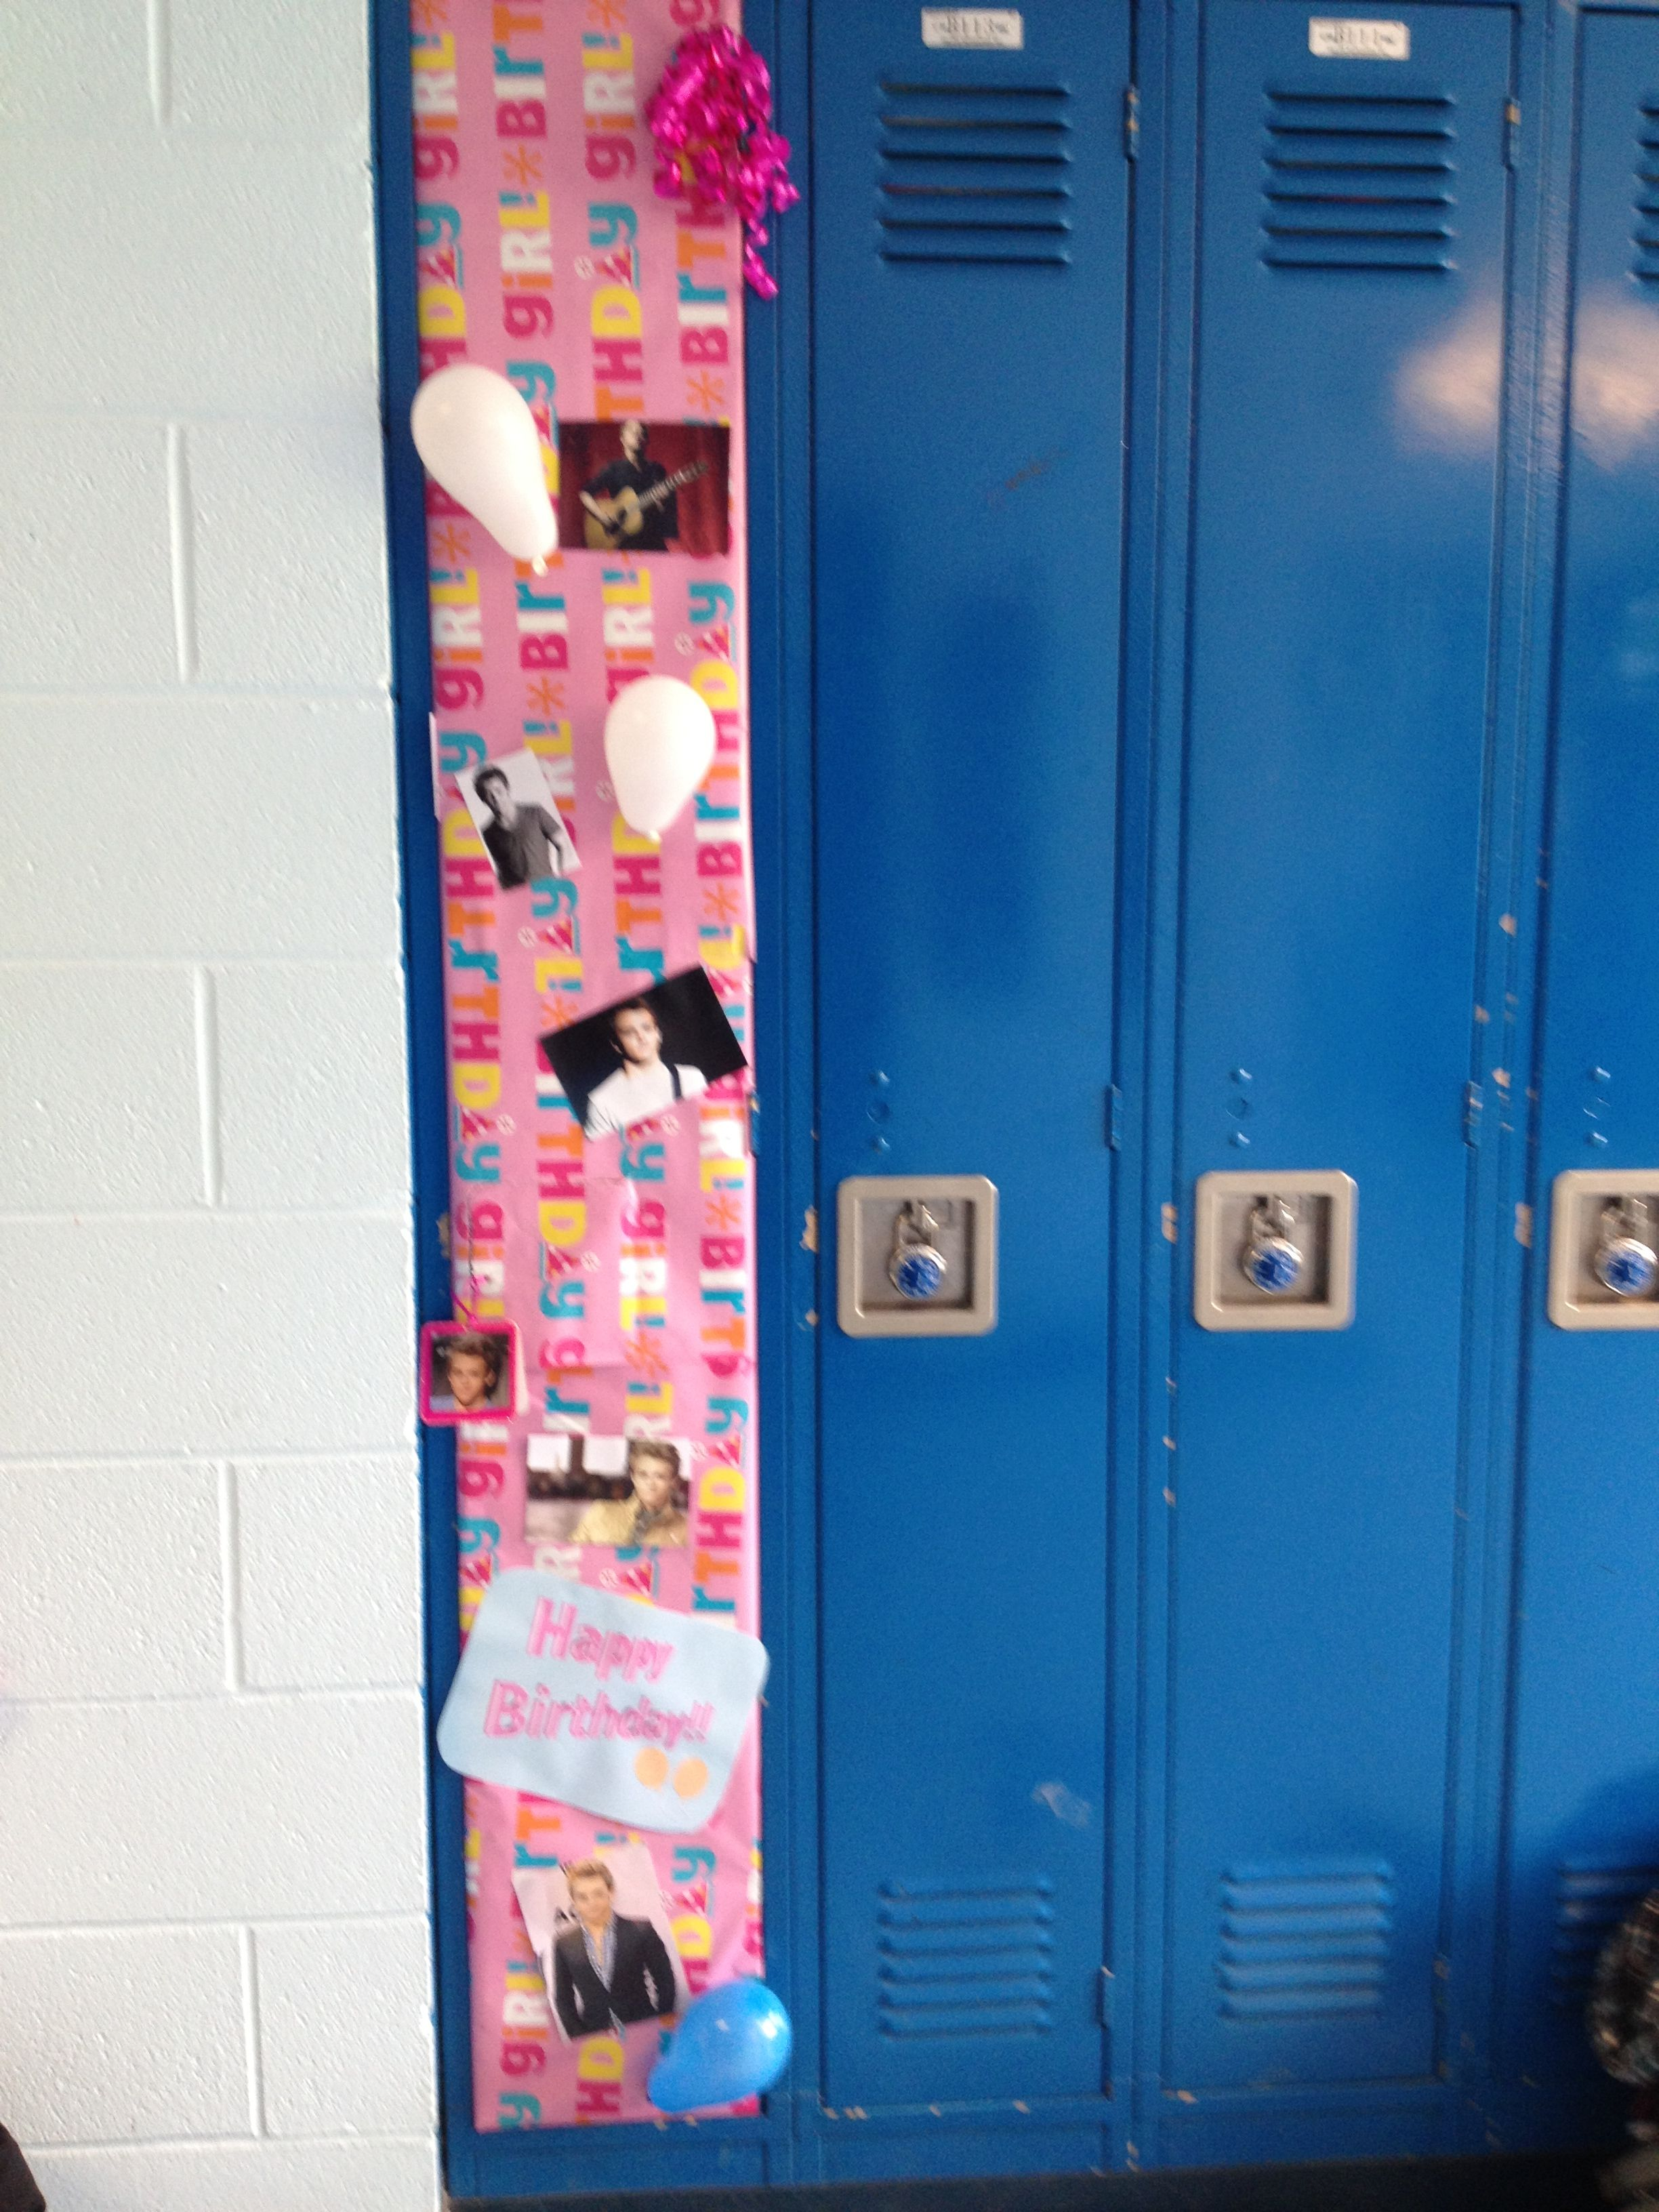 What pranks can I play on lockers in high school? | Yahoo ...